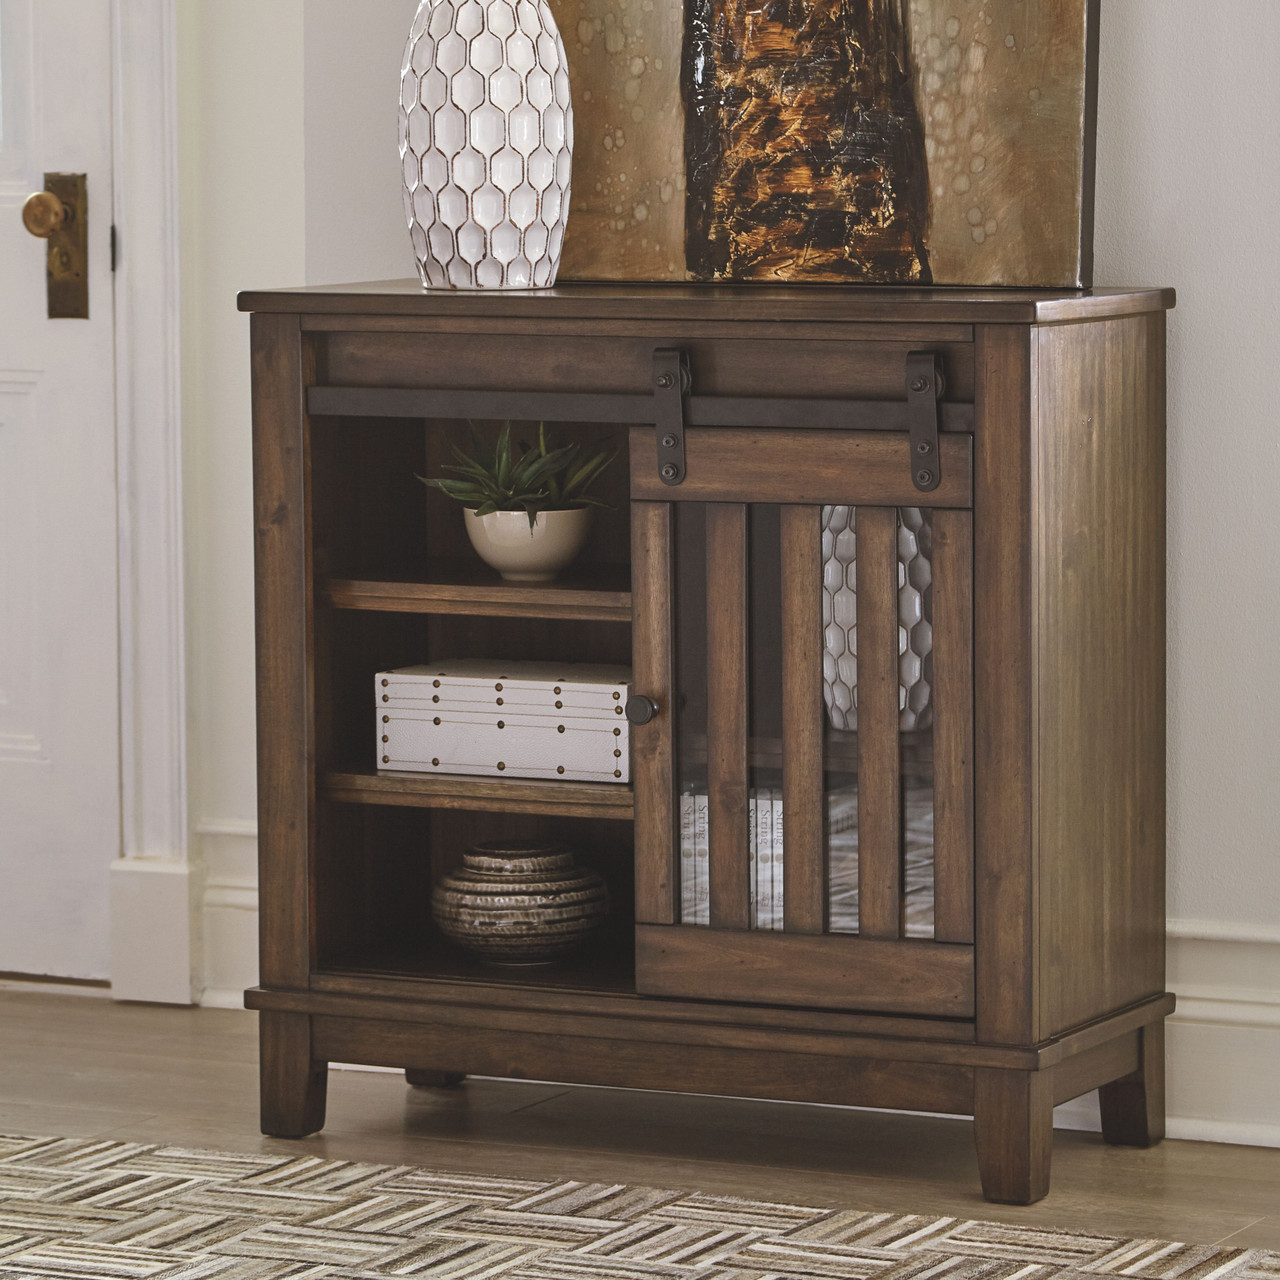 Brookport Brown Accent Cabinet On Sale At Stringer Furniture Serving Jackson Ms